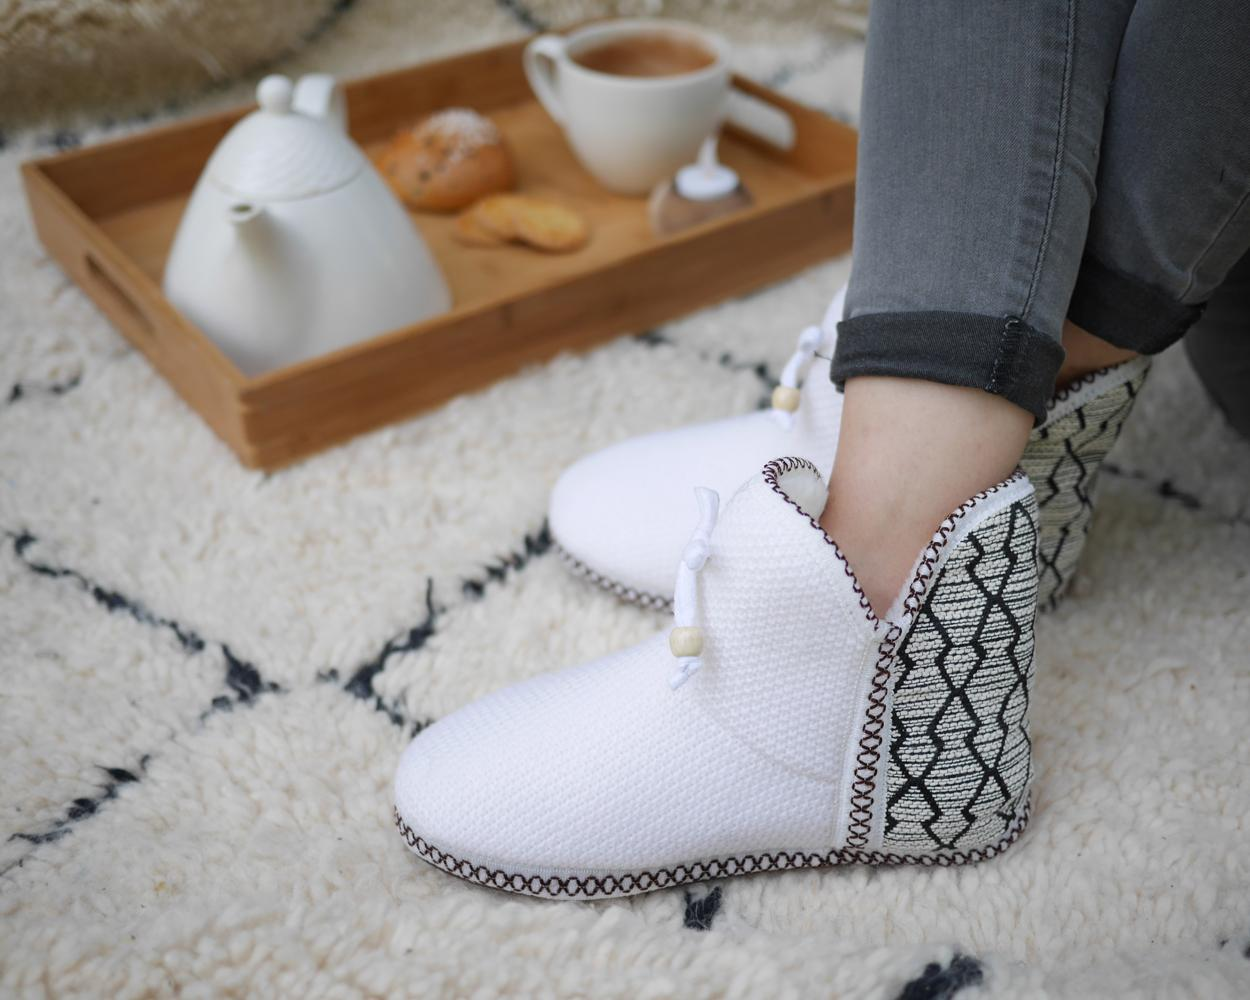 The slippers feature an innovative lining that aids relaxation and nourishes the skin